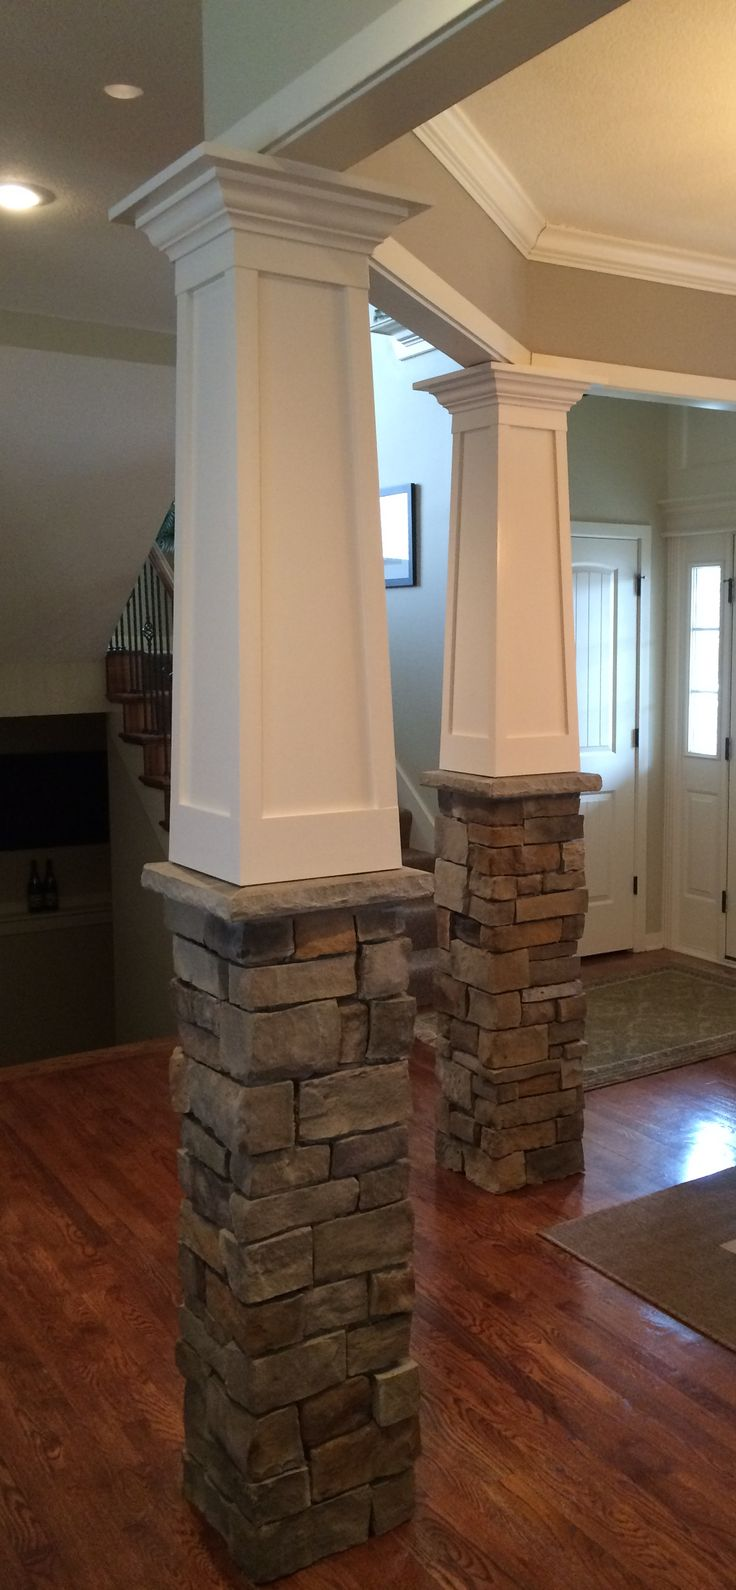 Best 25 fiberglass columns ideas on pinterest columns for Fiberglass interior columns